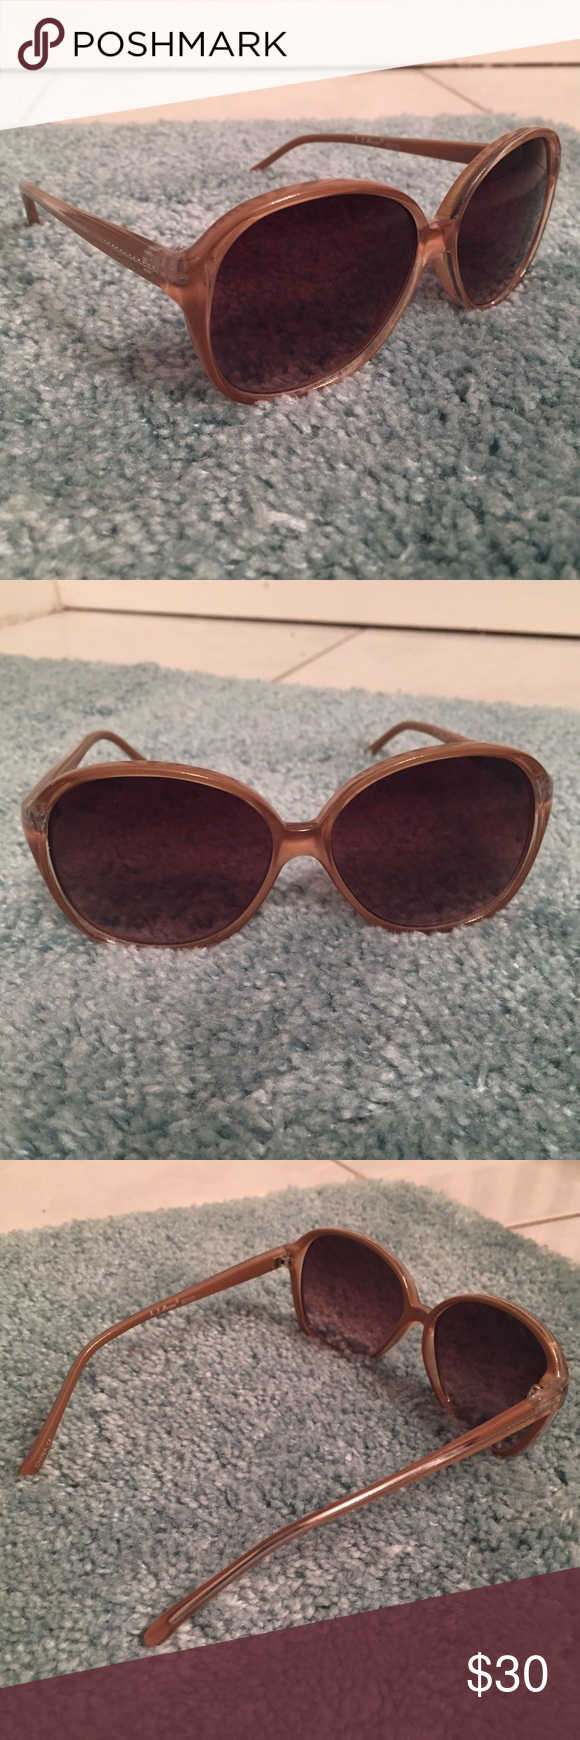 4b07a29d0 A.J. Morgan Sunglasses light brown sunglasses with gold trim, never used  and in perfect condition A.J. Morgan Accessories Glasses